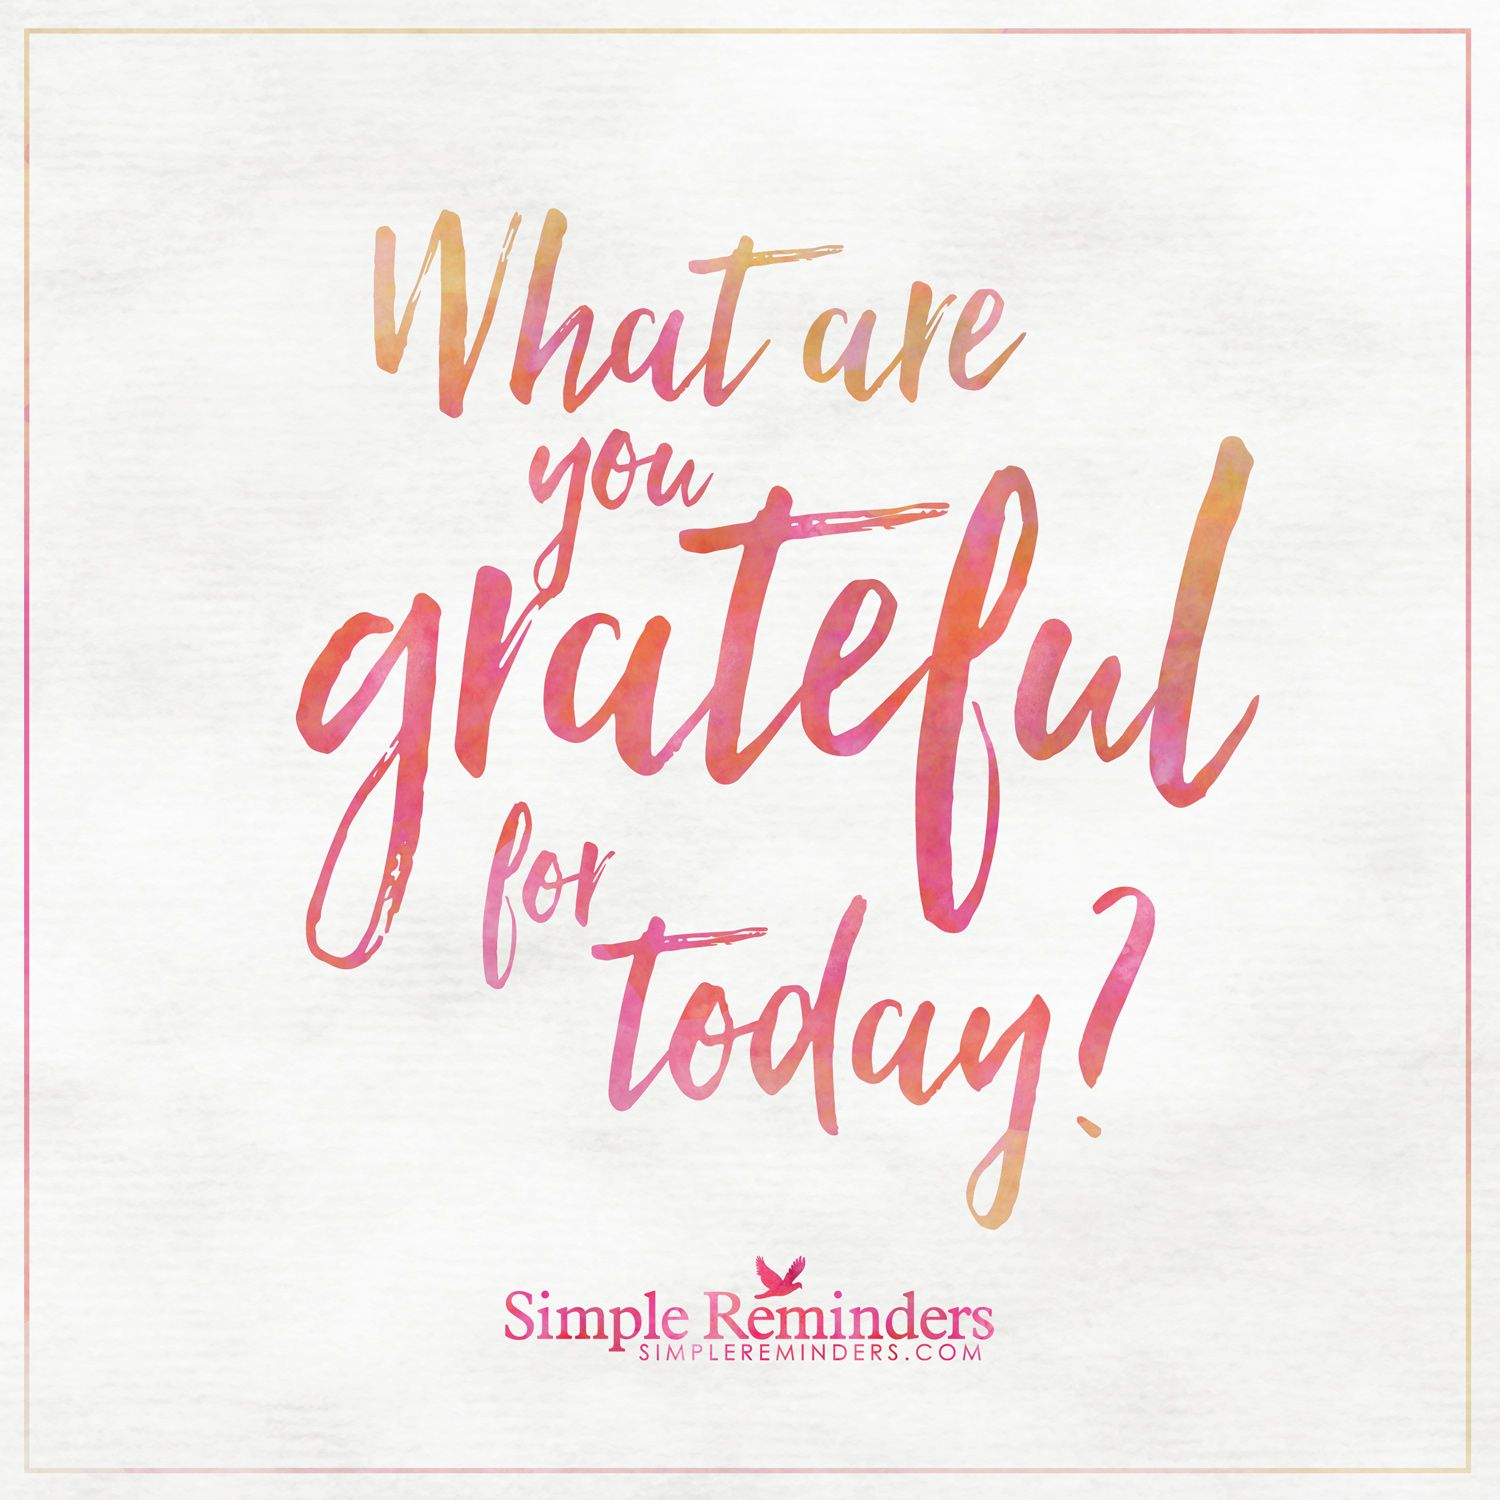 Quote For Today: What Are You Grateful For Today By Simple Reminders Https